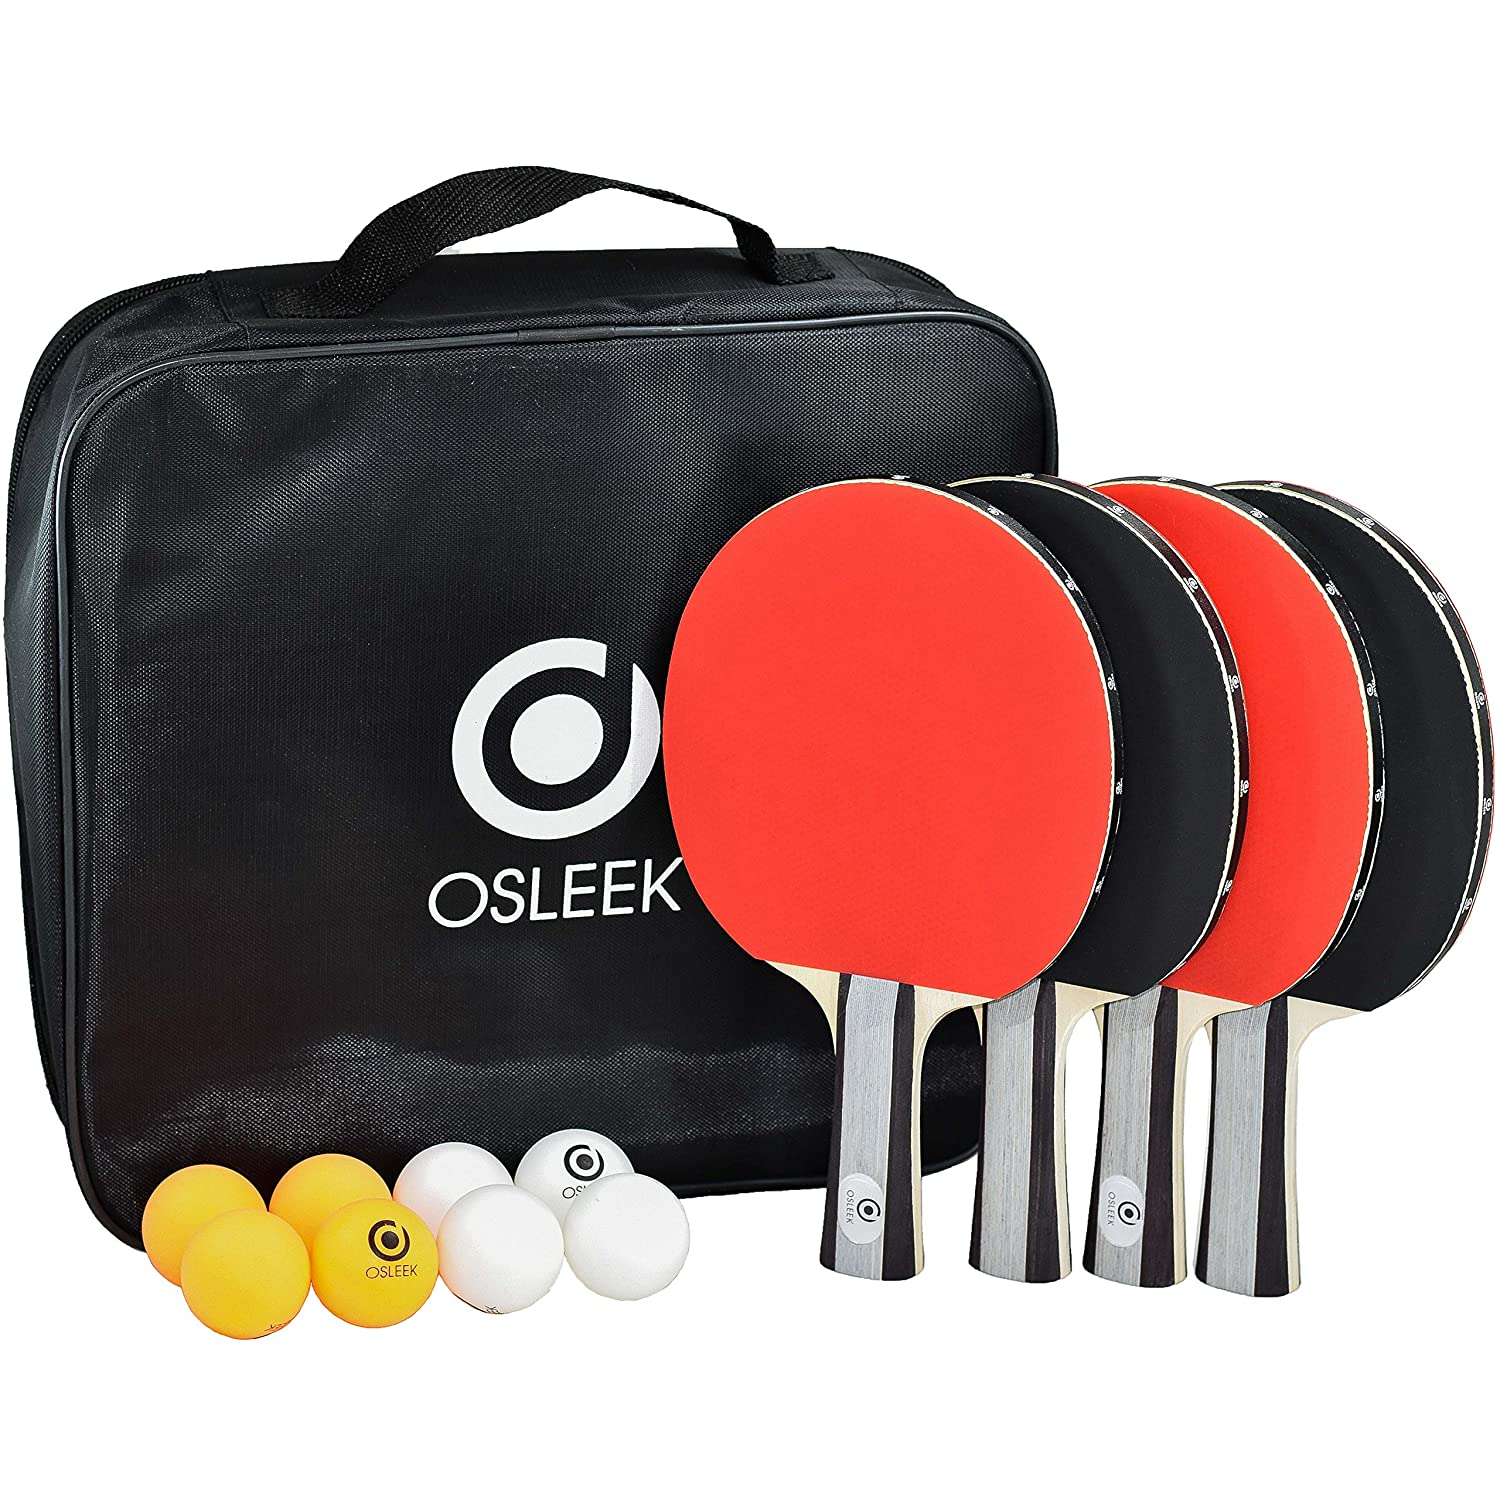 Osleek Ping Pong Paddle Set - 4 Rackets 8 Balls Professional/Recreational Table Tennis Bundle Durable 5 Layer Blade, Performance Rubber For Control, Spin & Speed Packed in Protective Travel Case B07B2T6R63